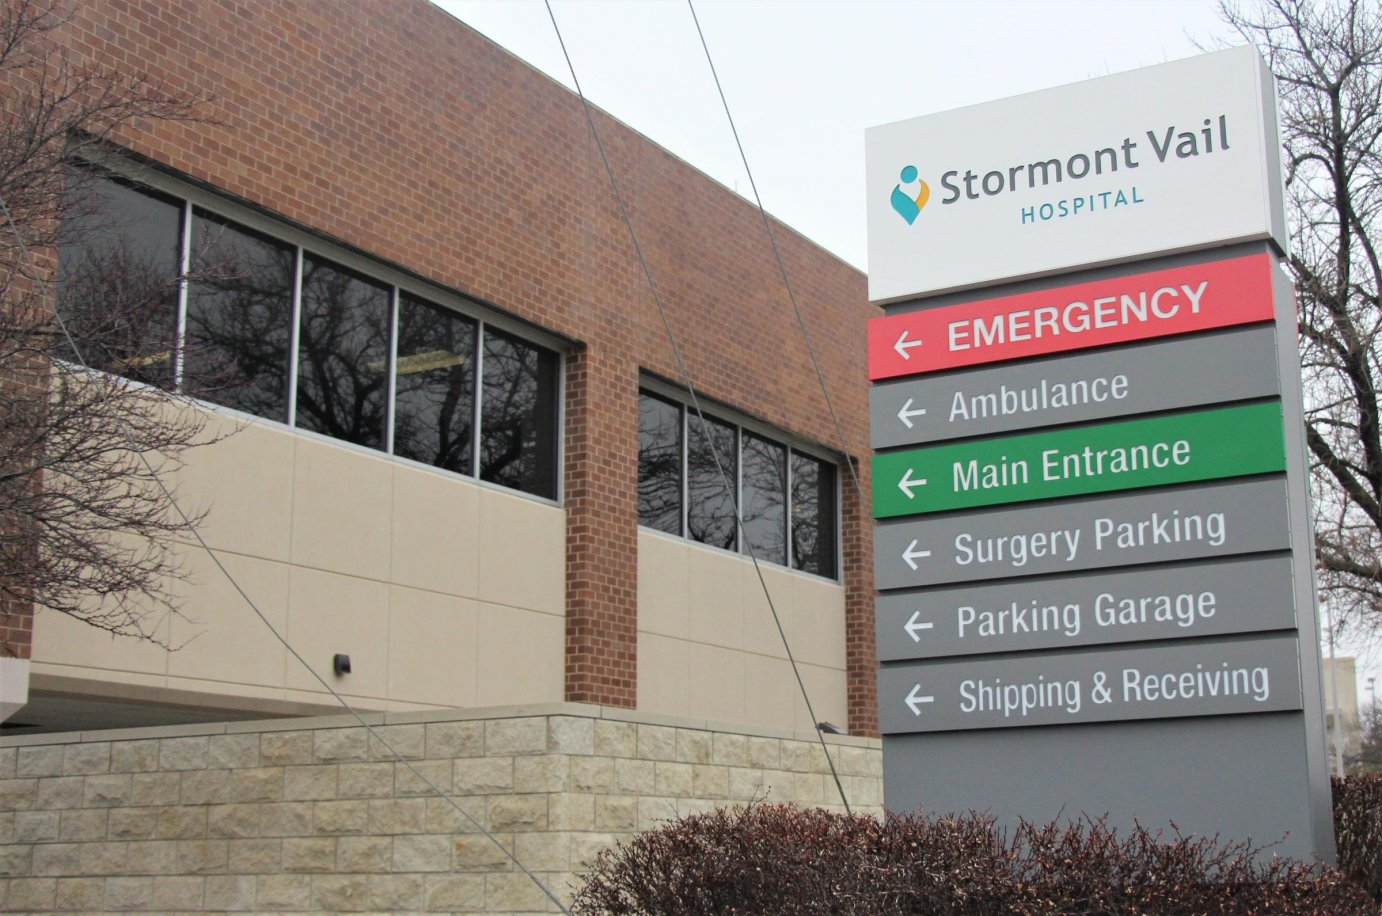 Stormont Vail Hospital in Topeka is among those preparing for the worst when it comes to the COVID-19 outbreak. (Photo by Celia Llopis-Jepsen, Kansas News Service)